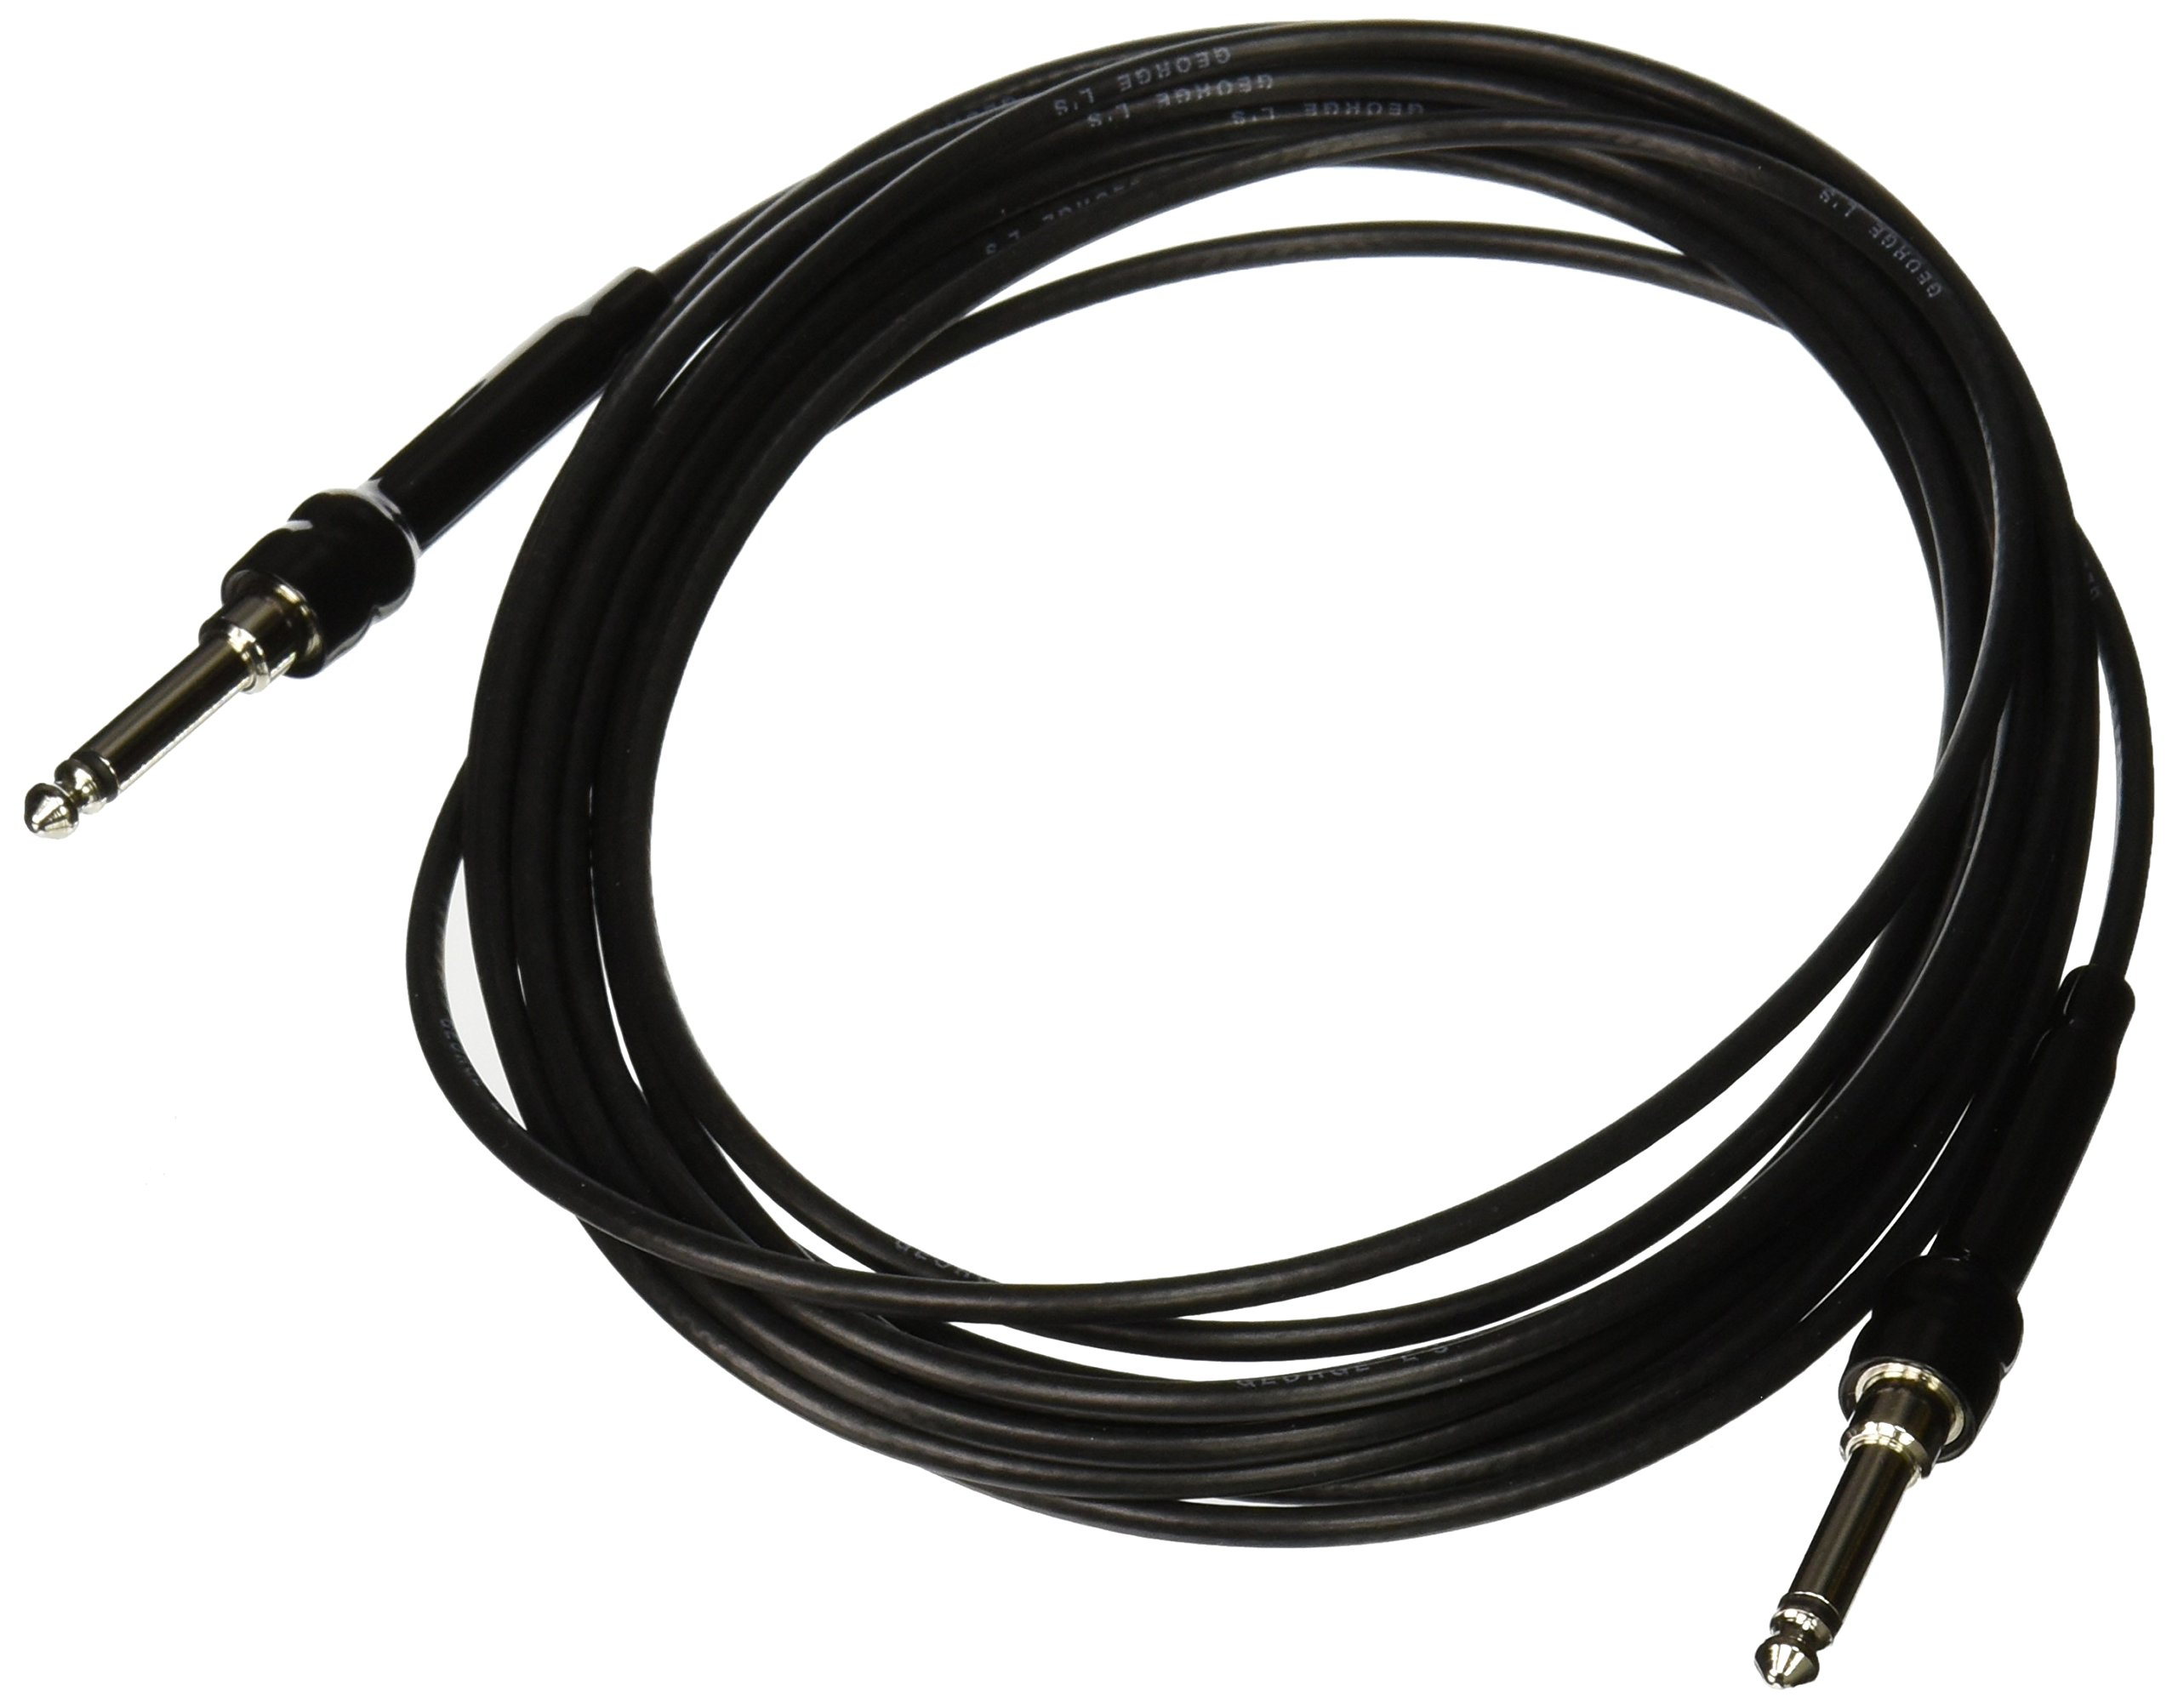 George L's 155 Guage Cable with Straight Plugs (Black, 20 Foot)